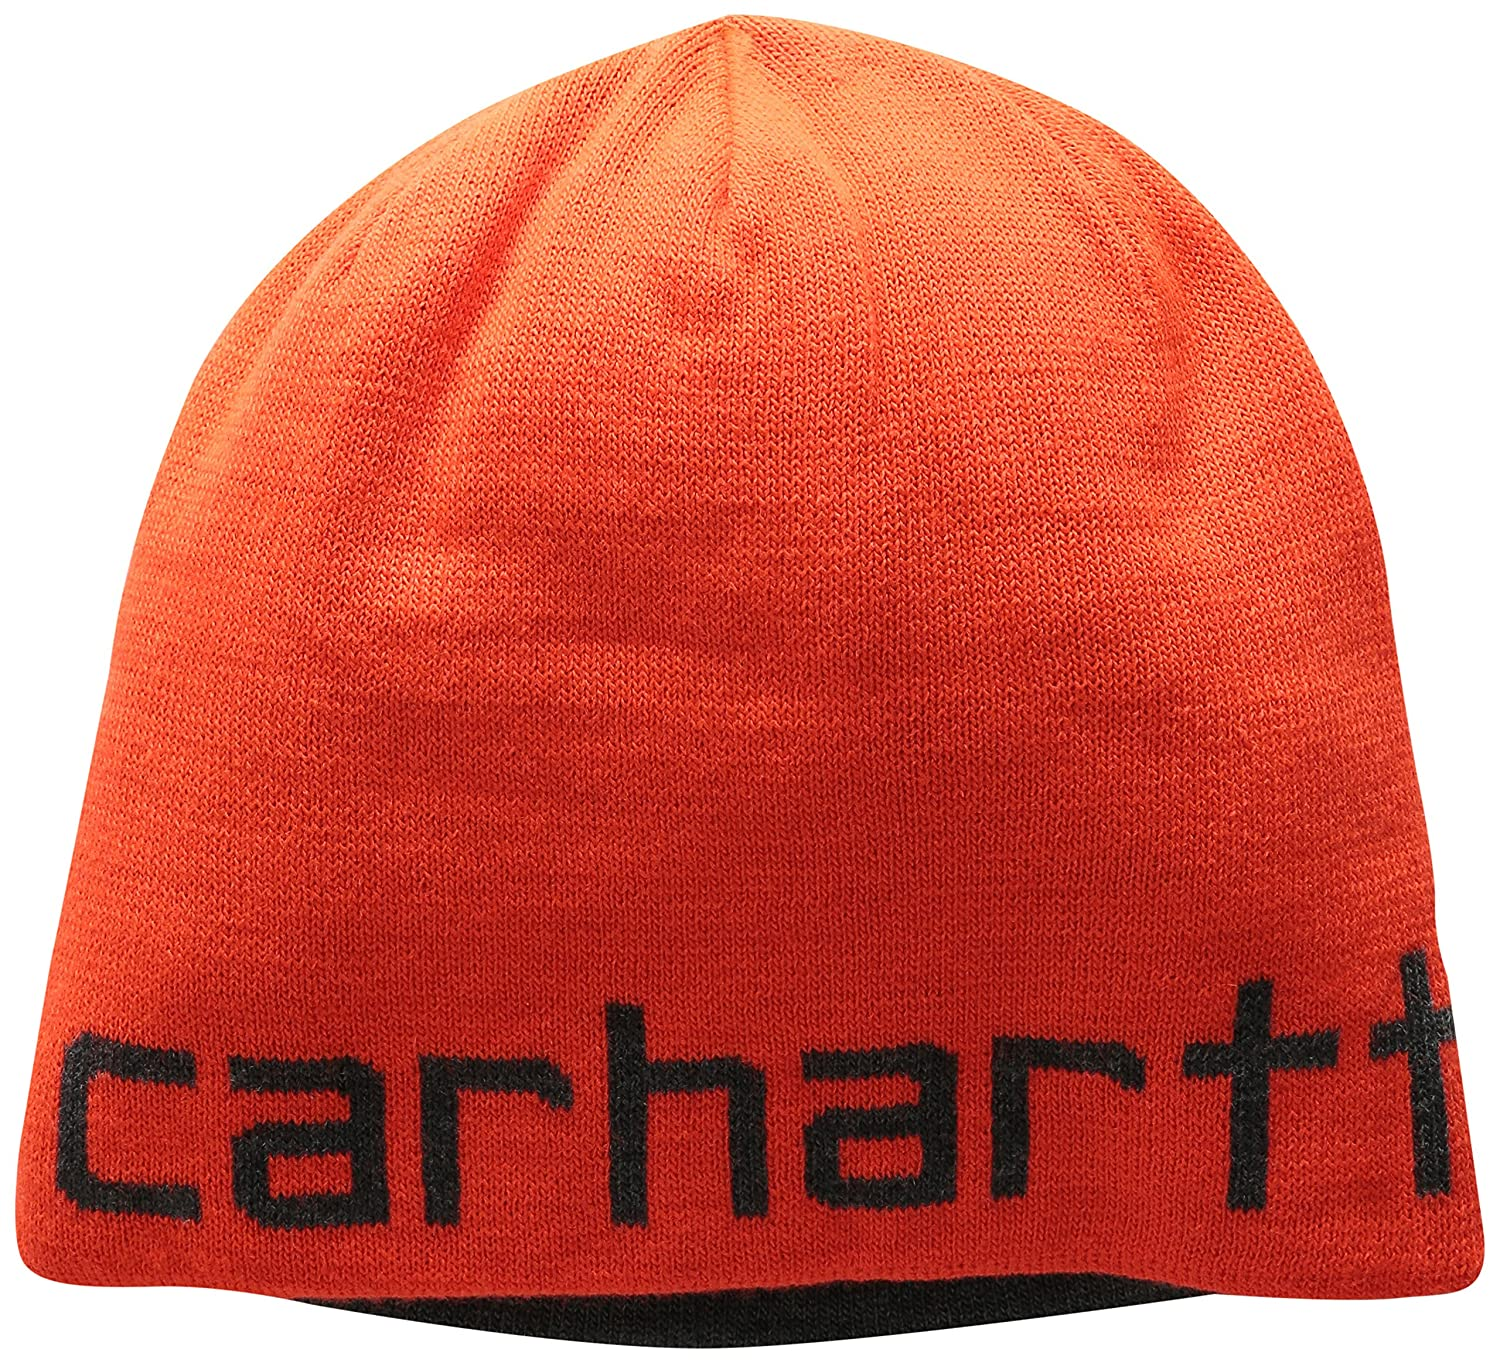 Carhartt Men's Greenfield Reversible Hat Carhartt Sportswear - Mens